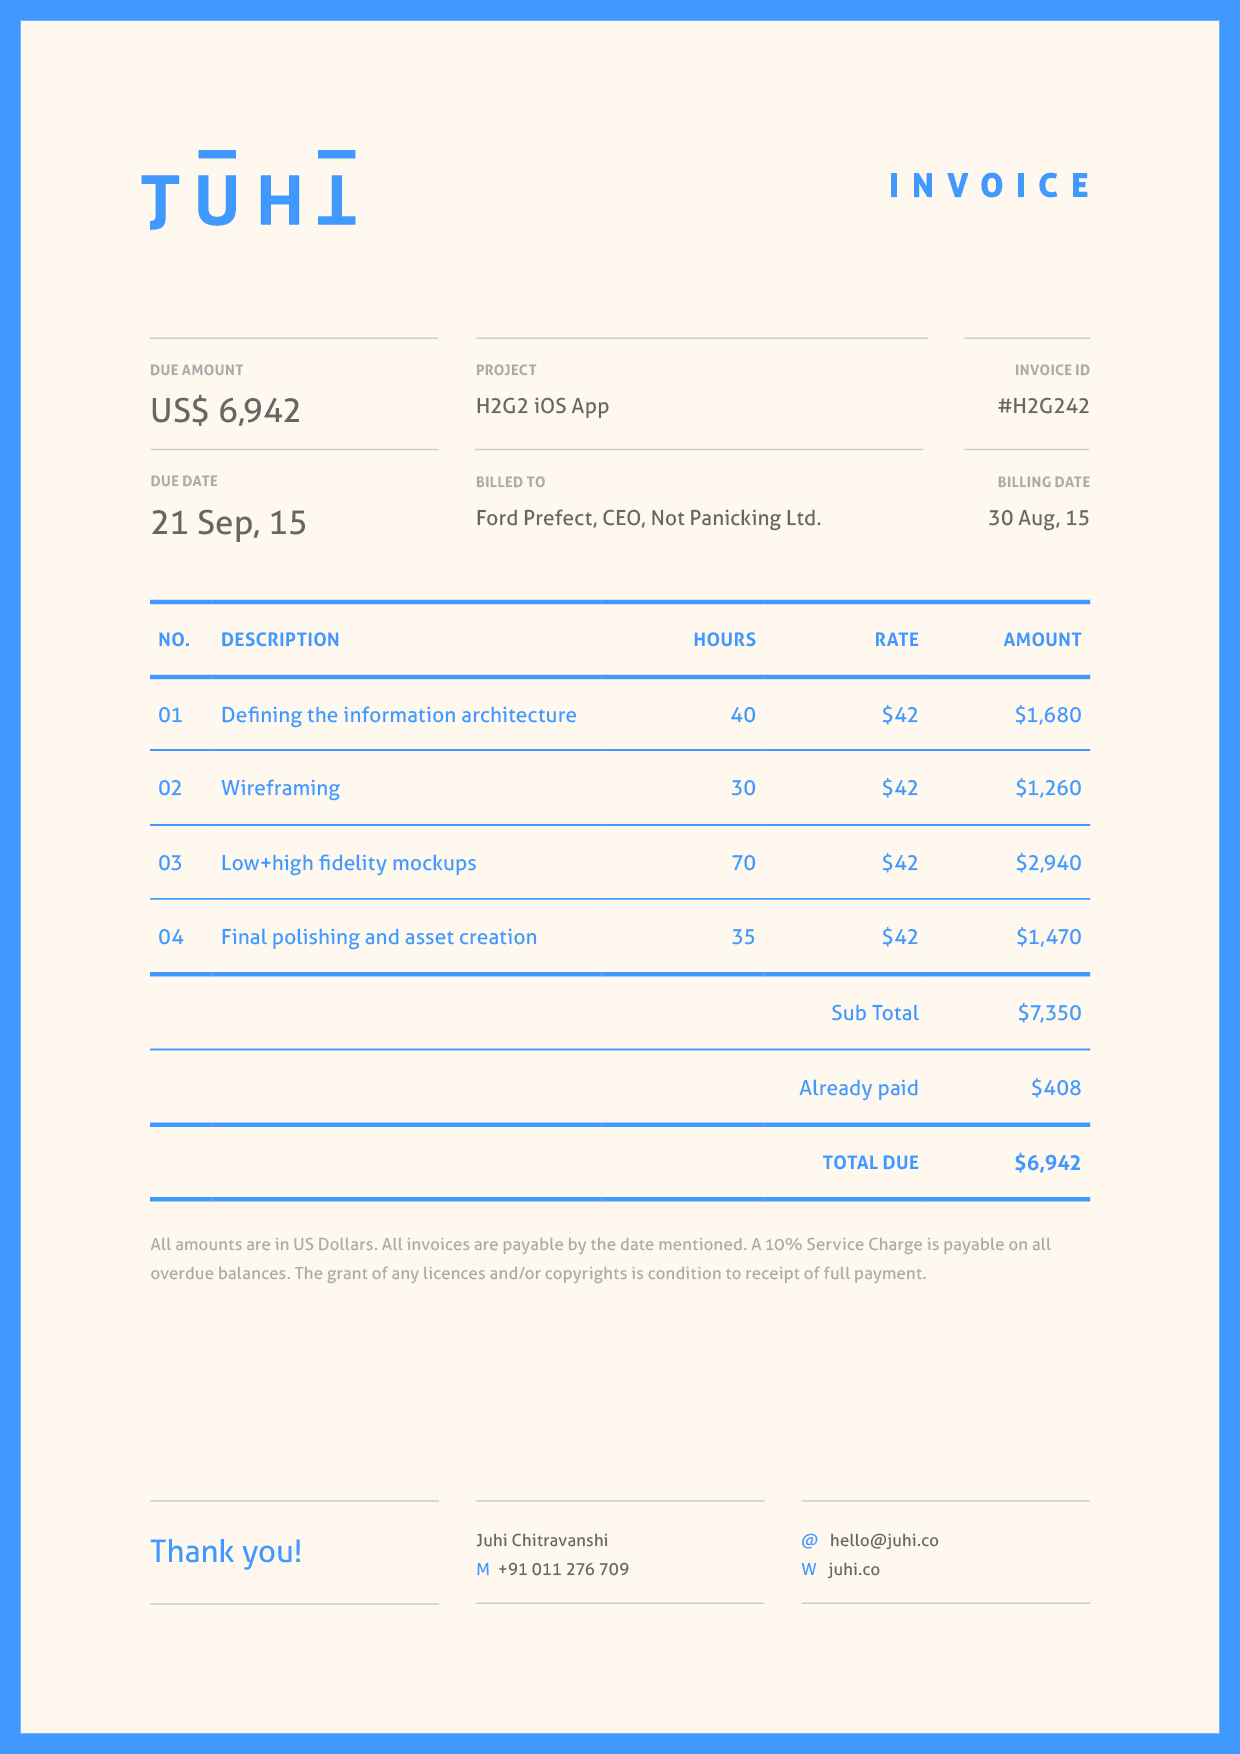 Usdgus  Surprising Dont Hold Back On Your Invoice  Inspiring Designs  With Marvelous Invoice By Juhi Chitravanshi Follow With Extraordinary New Jersey Gross Receipts Tax Also Receipt Books For Sale In Addition Free Donation Receipt Template And Acknowledgement Receipt Letter As Well As Us Immigration Receipt Number Additionally Business Receipt Template Word From Inspirationfeedcom With Usdgus  Marvelous Dont Hold Back On Your Invoice  Inspiring Designs  With Extraordinary Invoice By Juhi Chitravanshi Follow And Surprising New Jersey Gross Receipts Tax Also Receipt Books For Sale In Addition Free Donation Receipt Template From Inspirationfeedcom